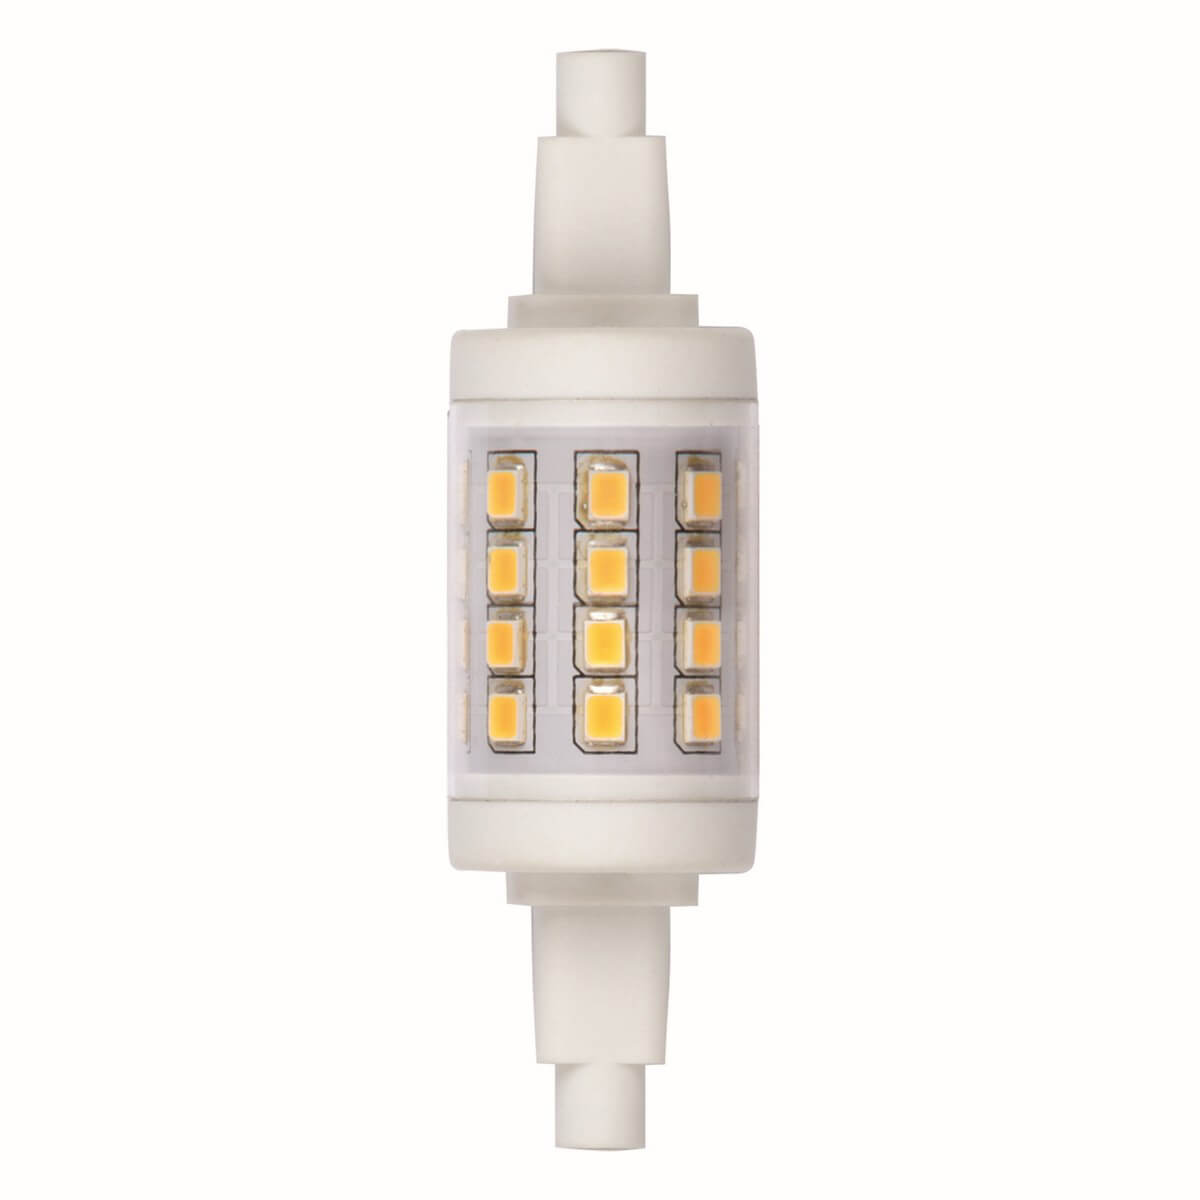 Лампочка Uniel LED-J78-6W/WW/R7s/CL PLZ06WH LED-J